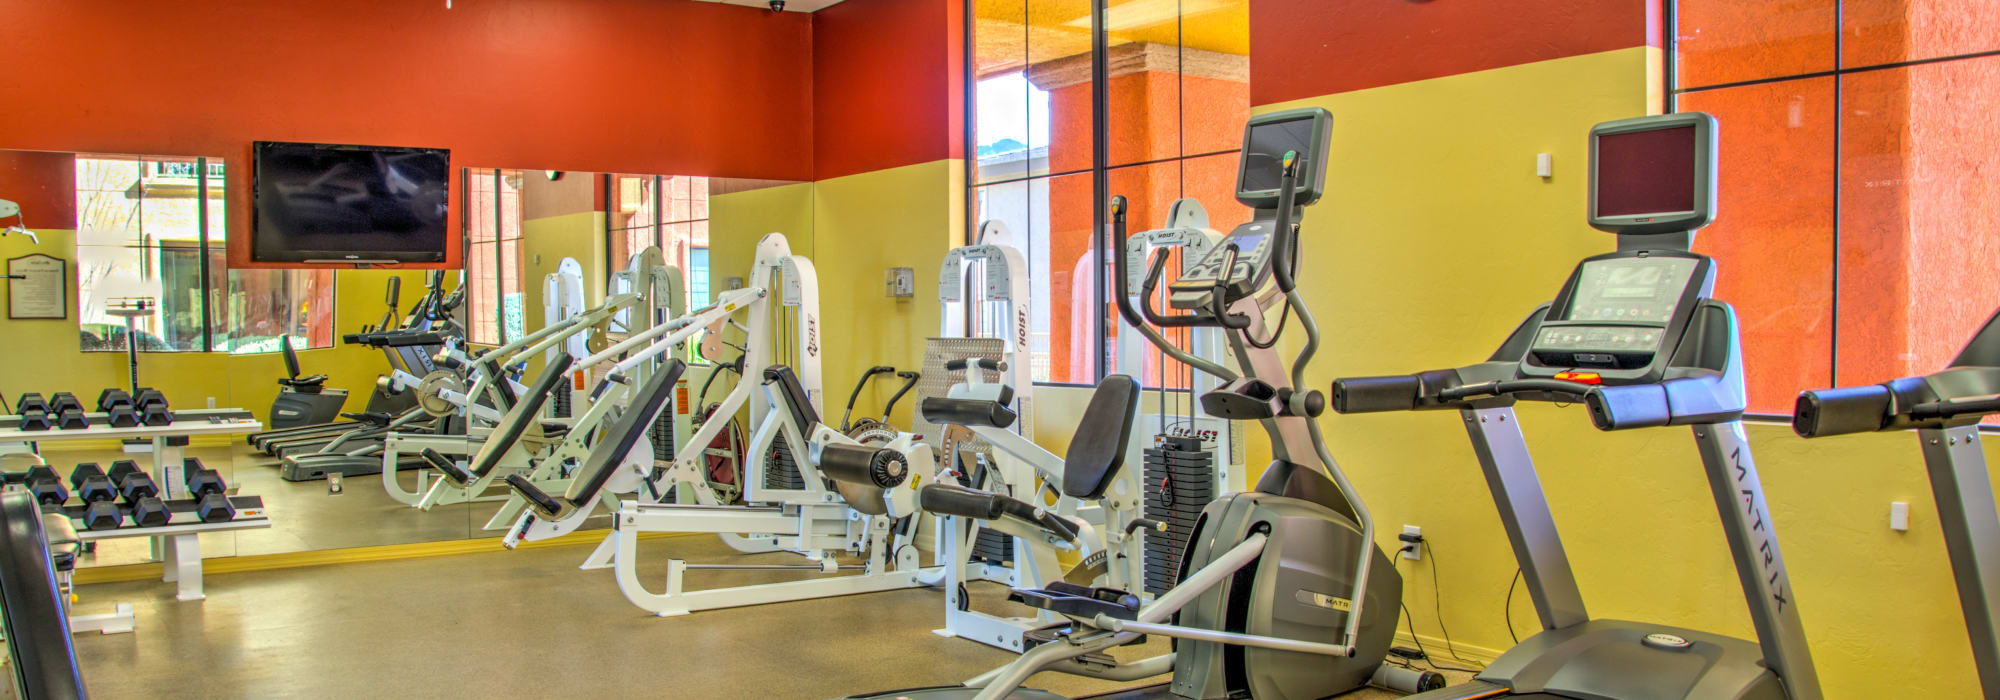 Fitness center at Oro Vista Apartments in Oro Valley, Arizona